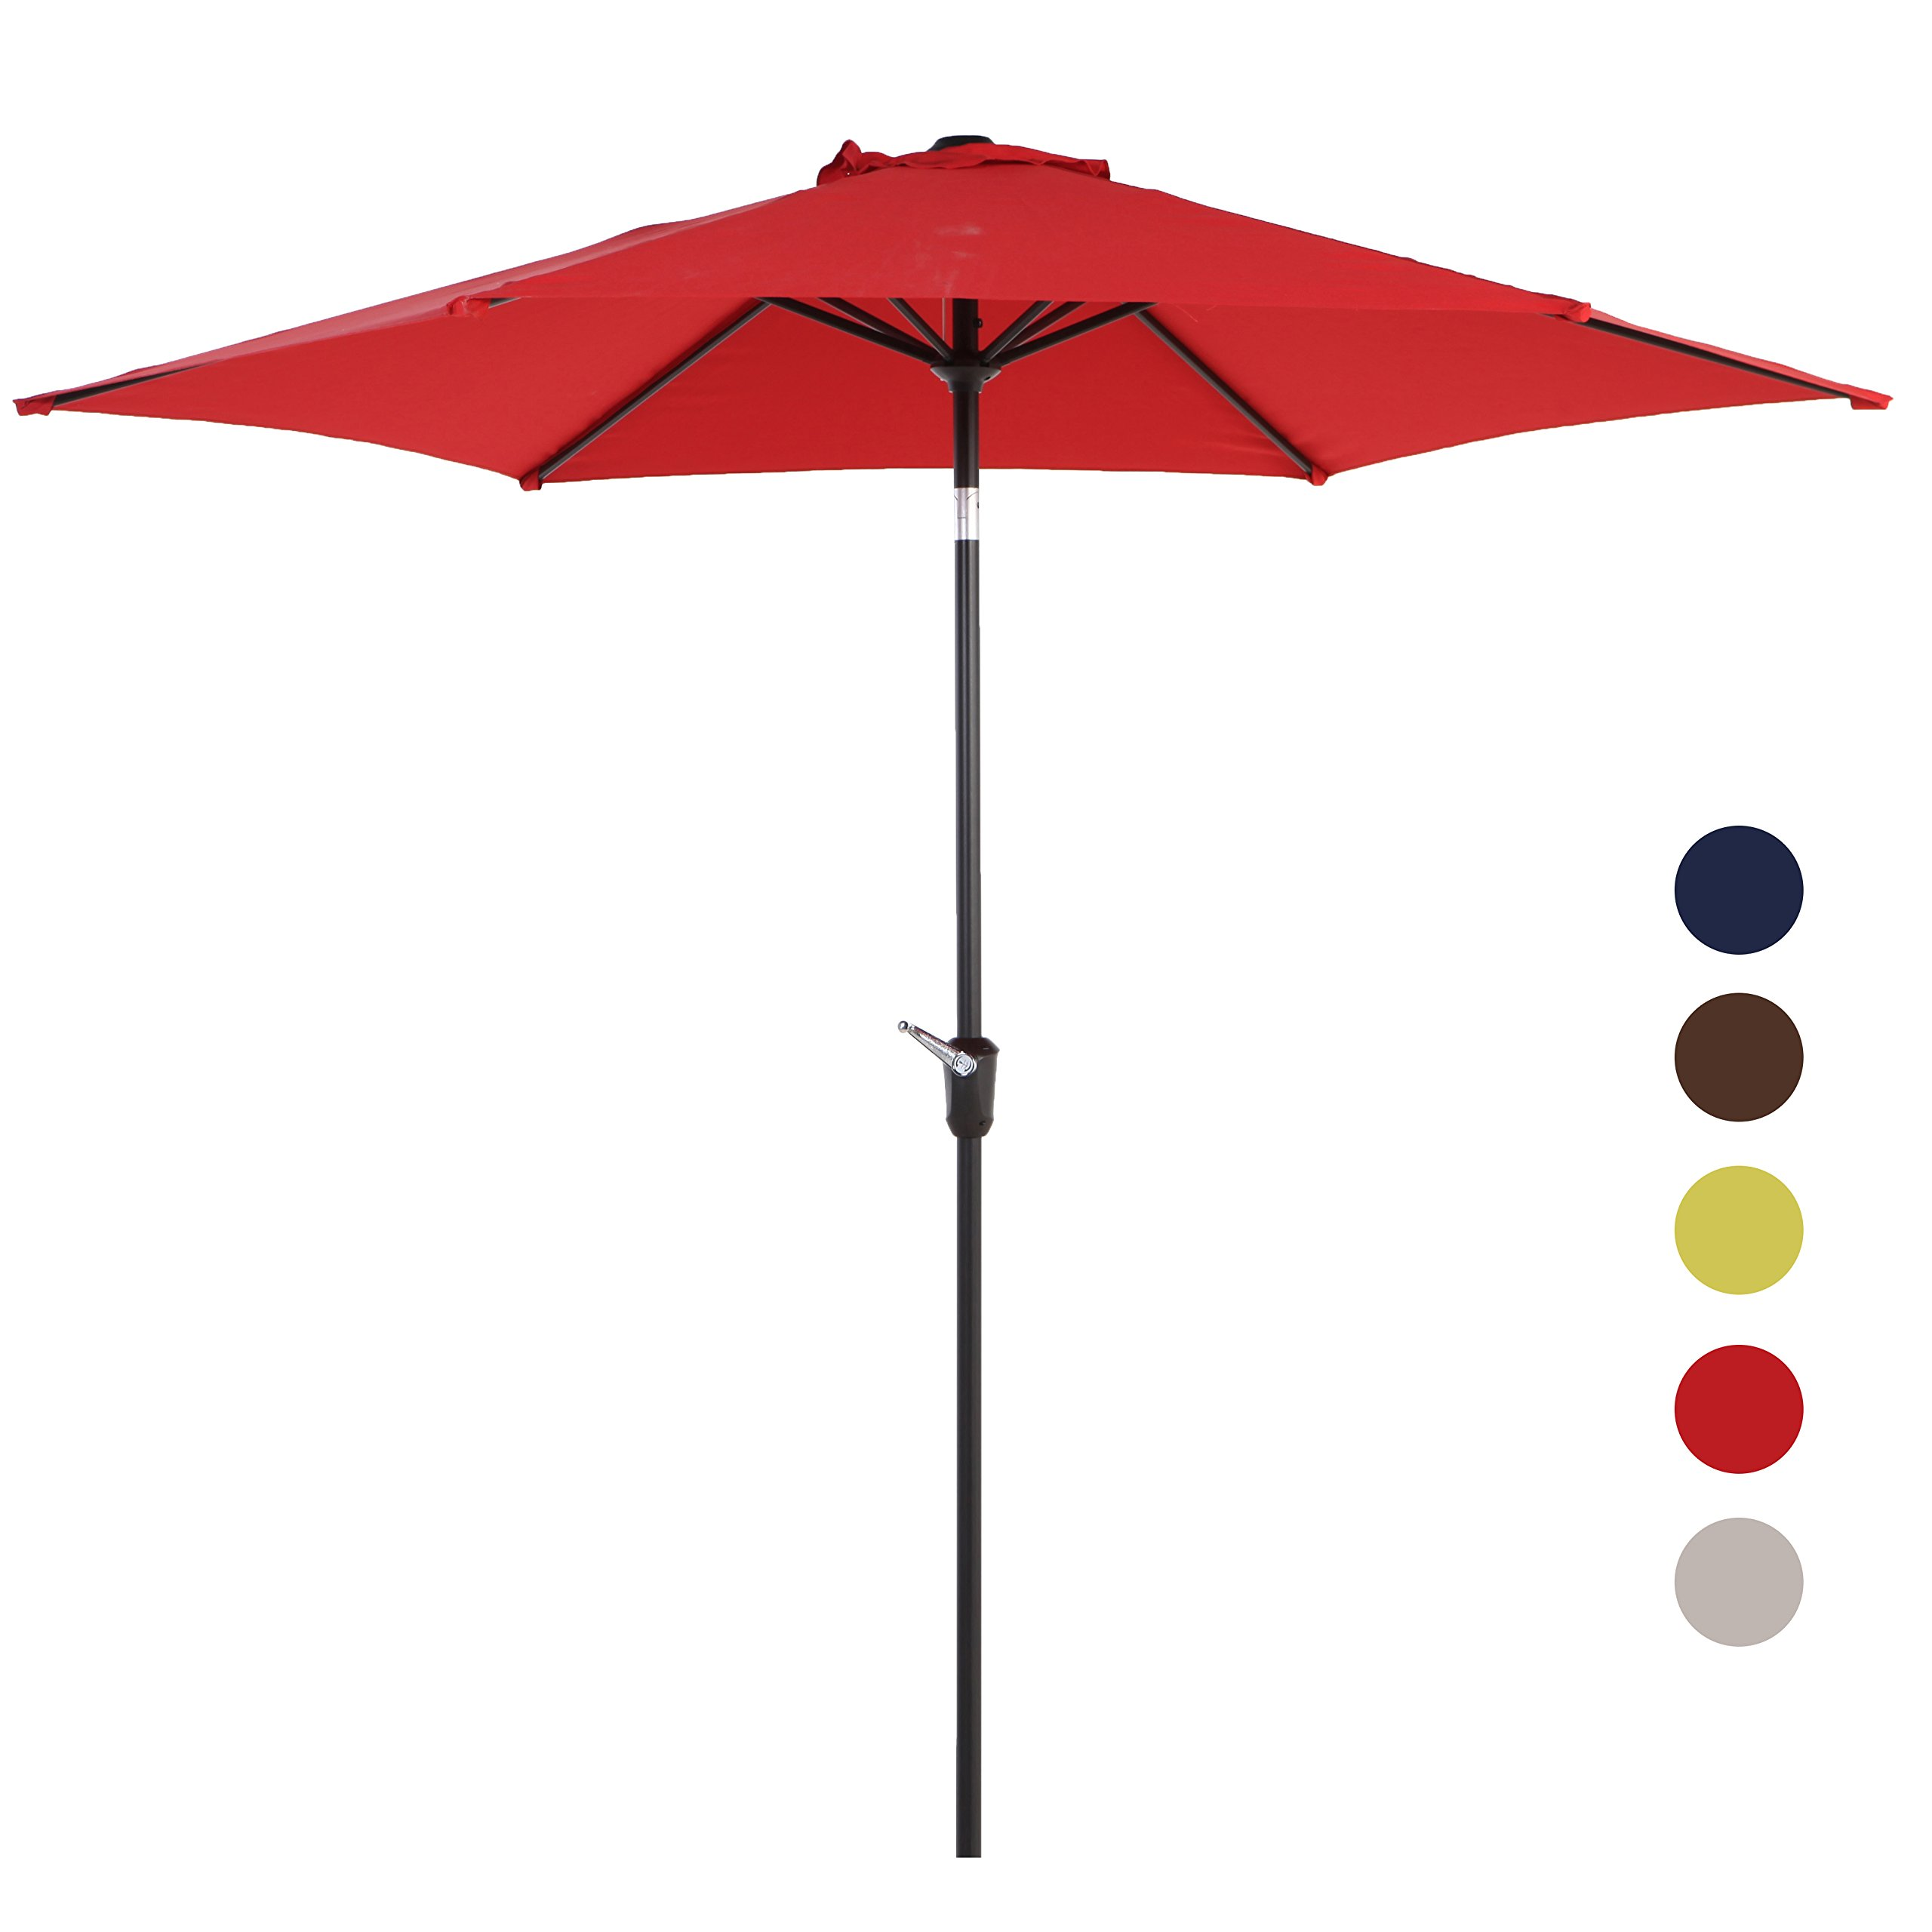 Grand patio 9FT Aluminum Patio Umbrella, UV Protective Beach Umbrella with Easy Crank and W/O Tilt, Powder Coated Outdoor Umbrella, Red